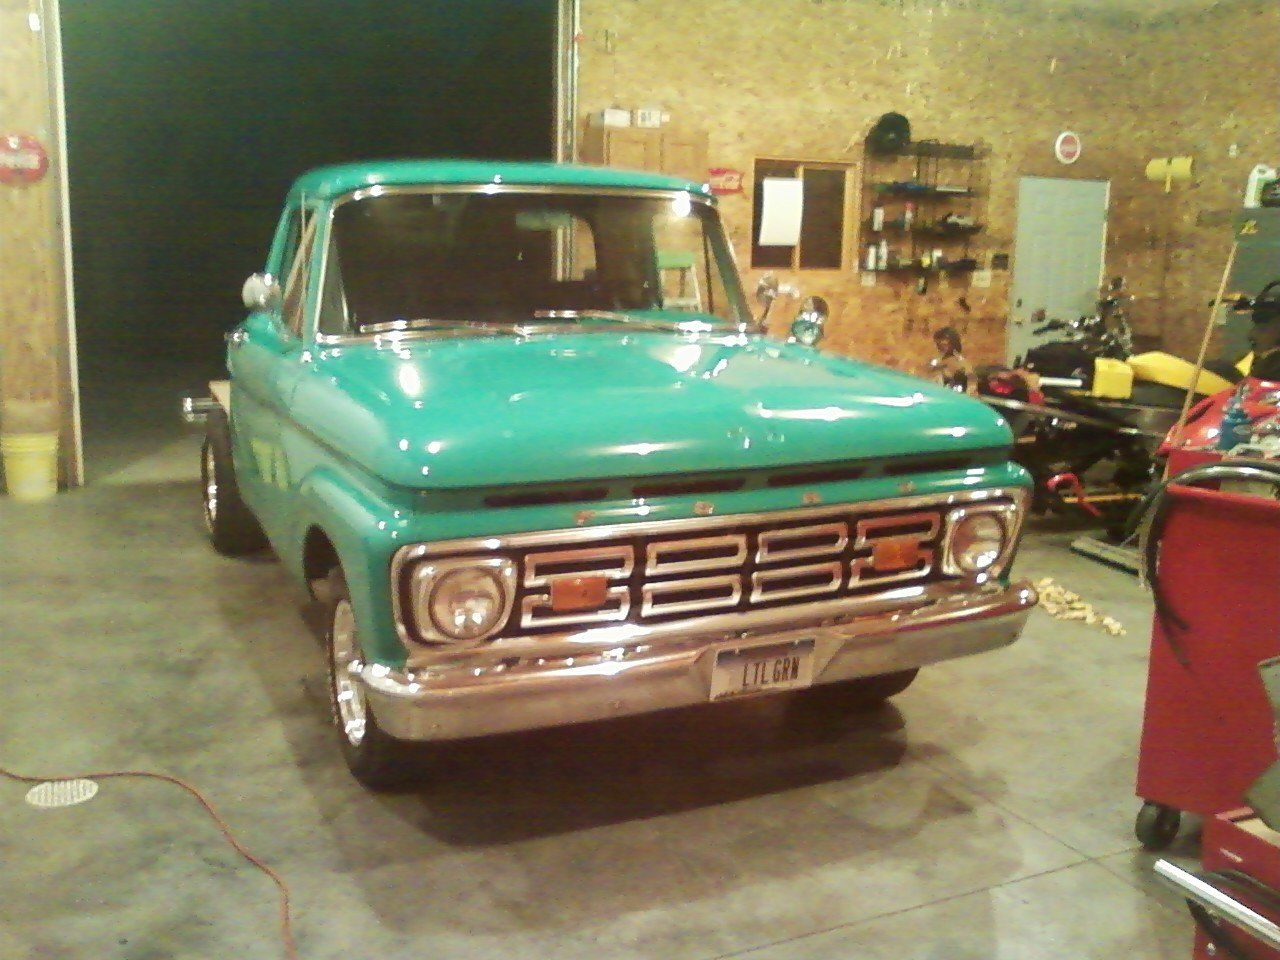 1964 Ford F100 Restoration Page 4 Ford Truck Enthusiasts Forums In 2020 1964 Ford Ford Truck Ford Trucks